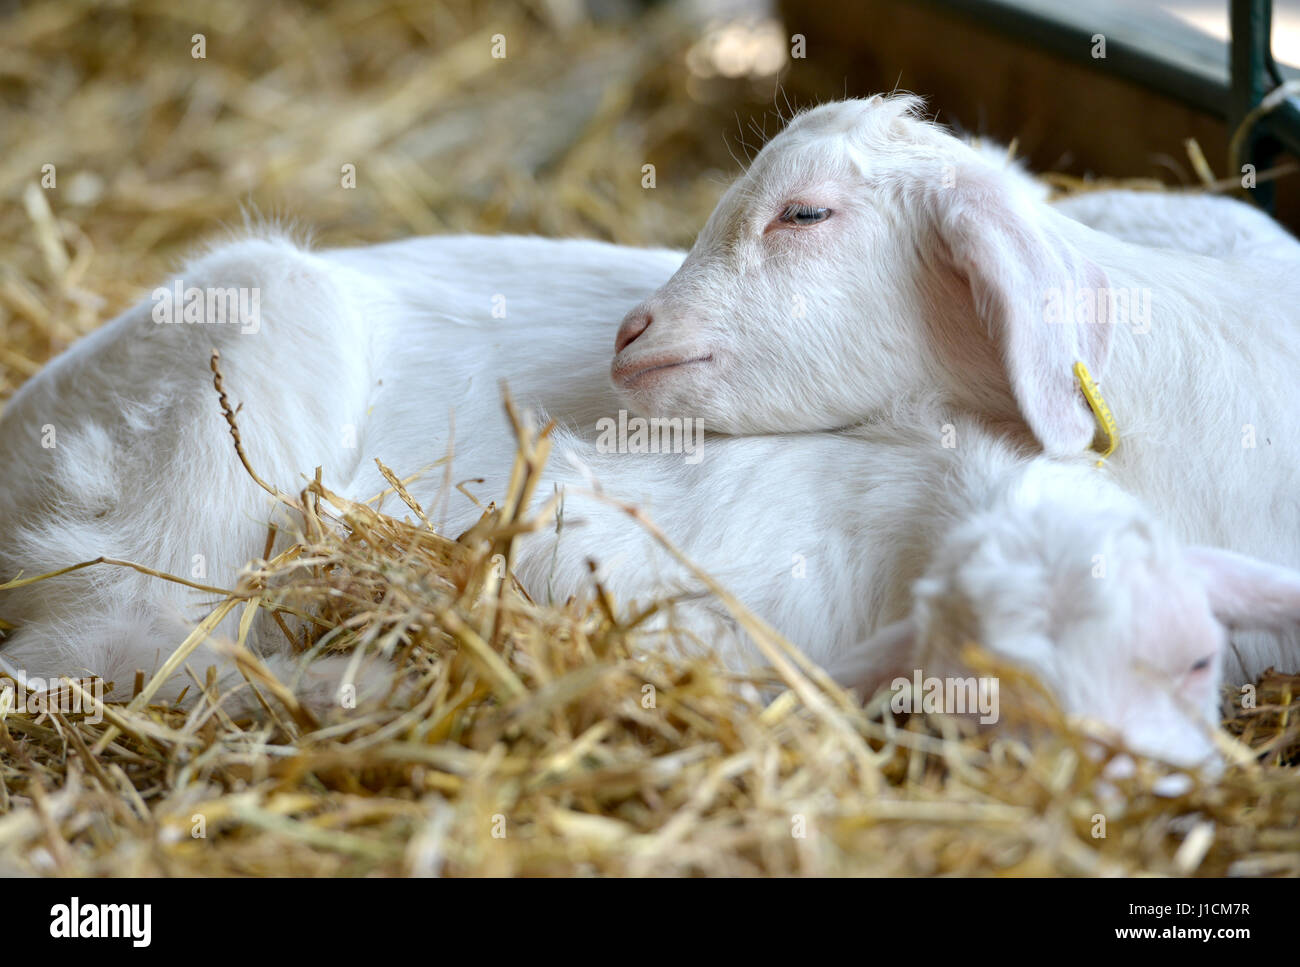 Baby goats sleeping close together - Stock Image